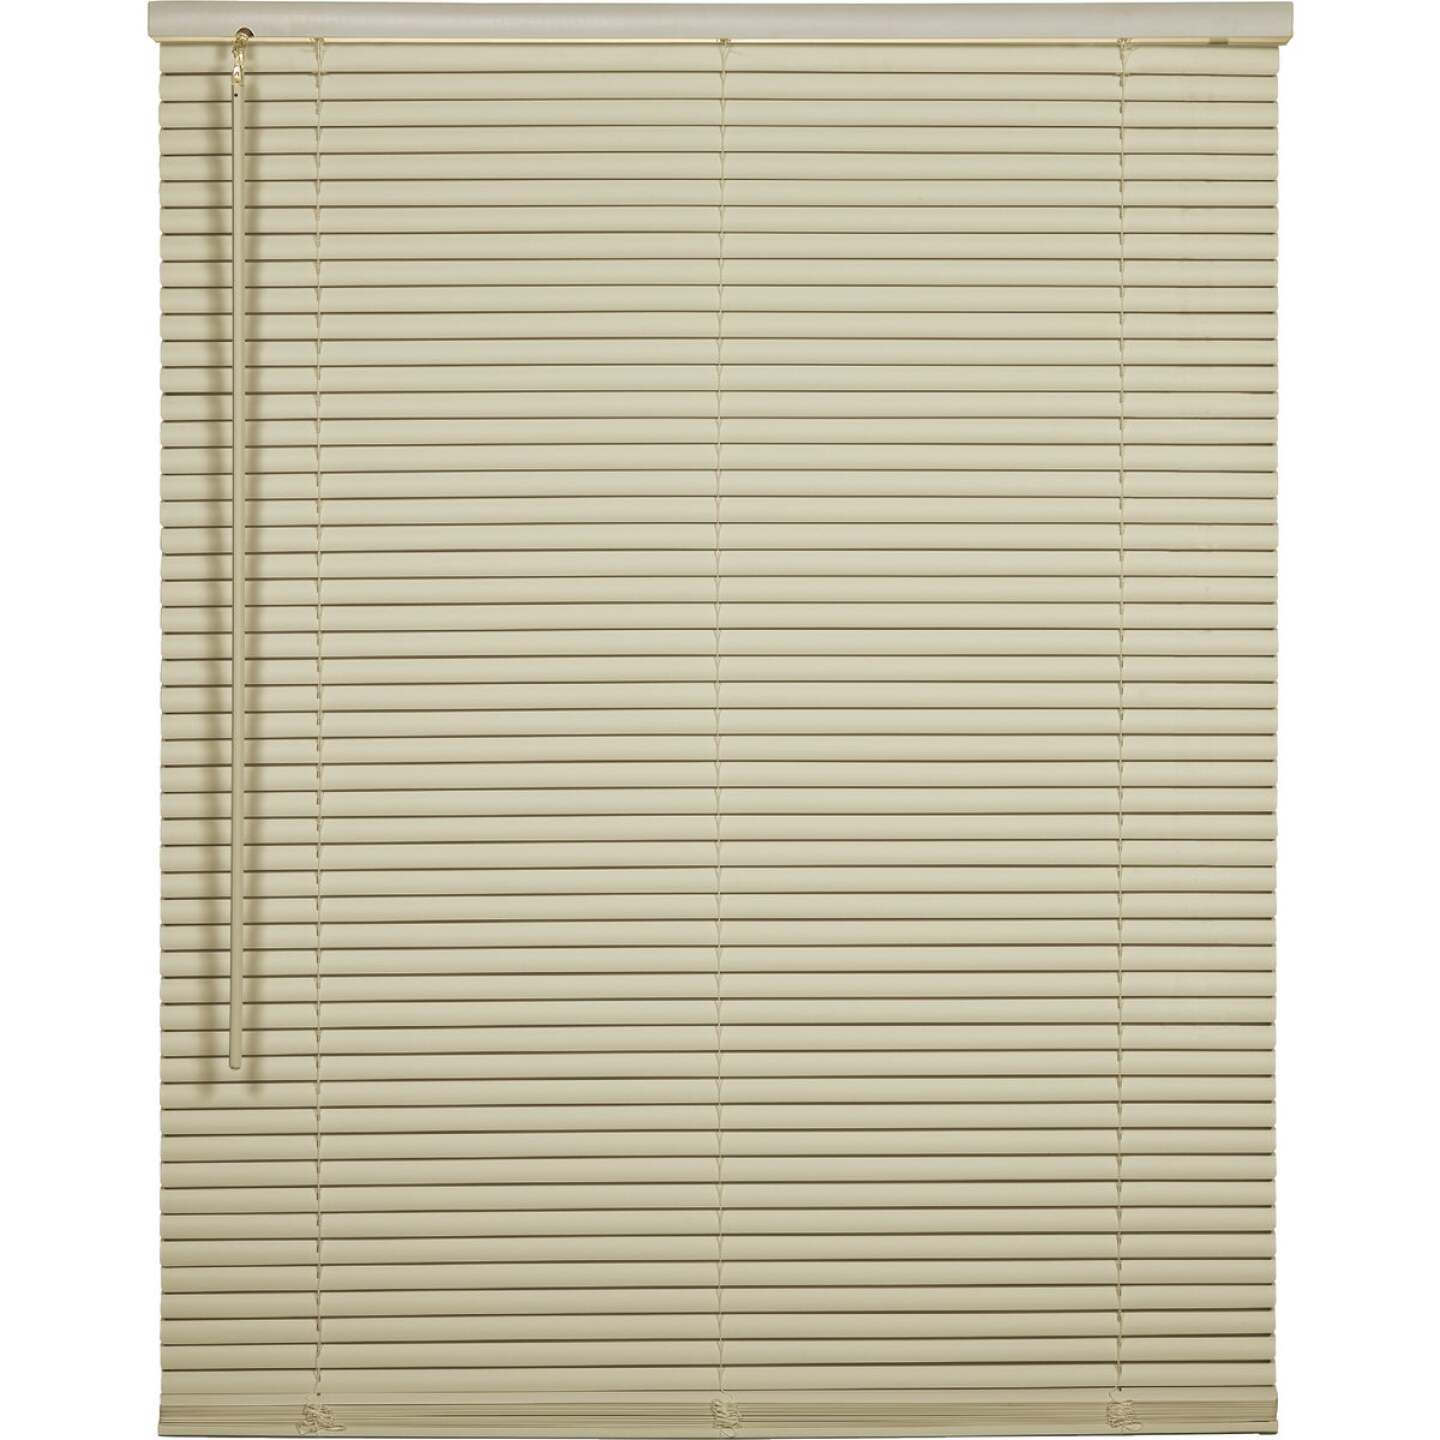 Home Impressions 70 In. x 64 In. x 1 In. Vanilla Vinyl Light Filtering Cordless Mini Blind Image 1